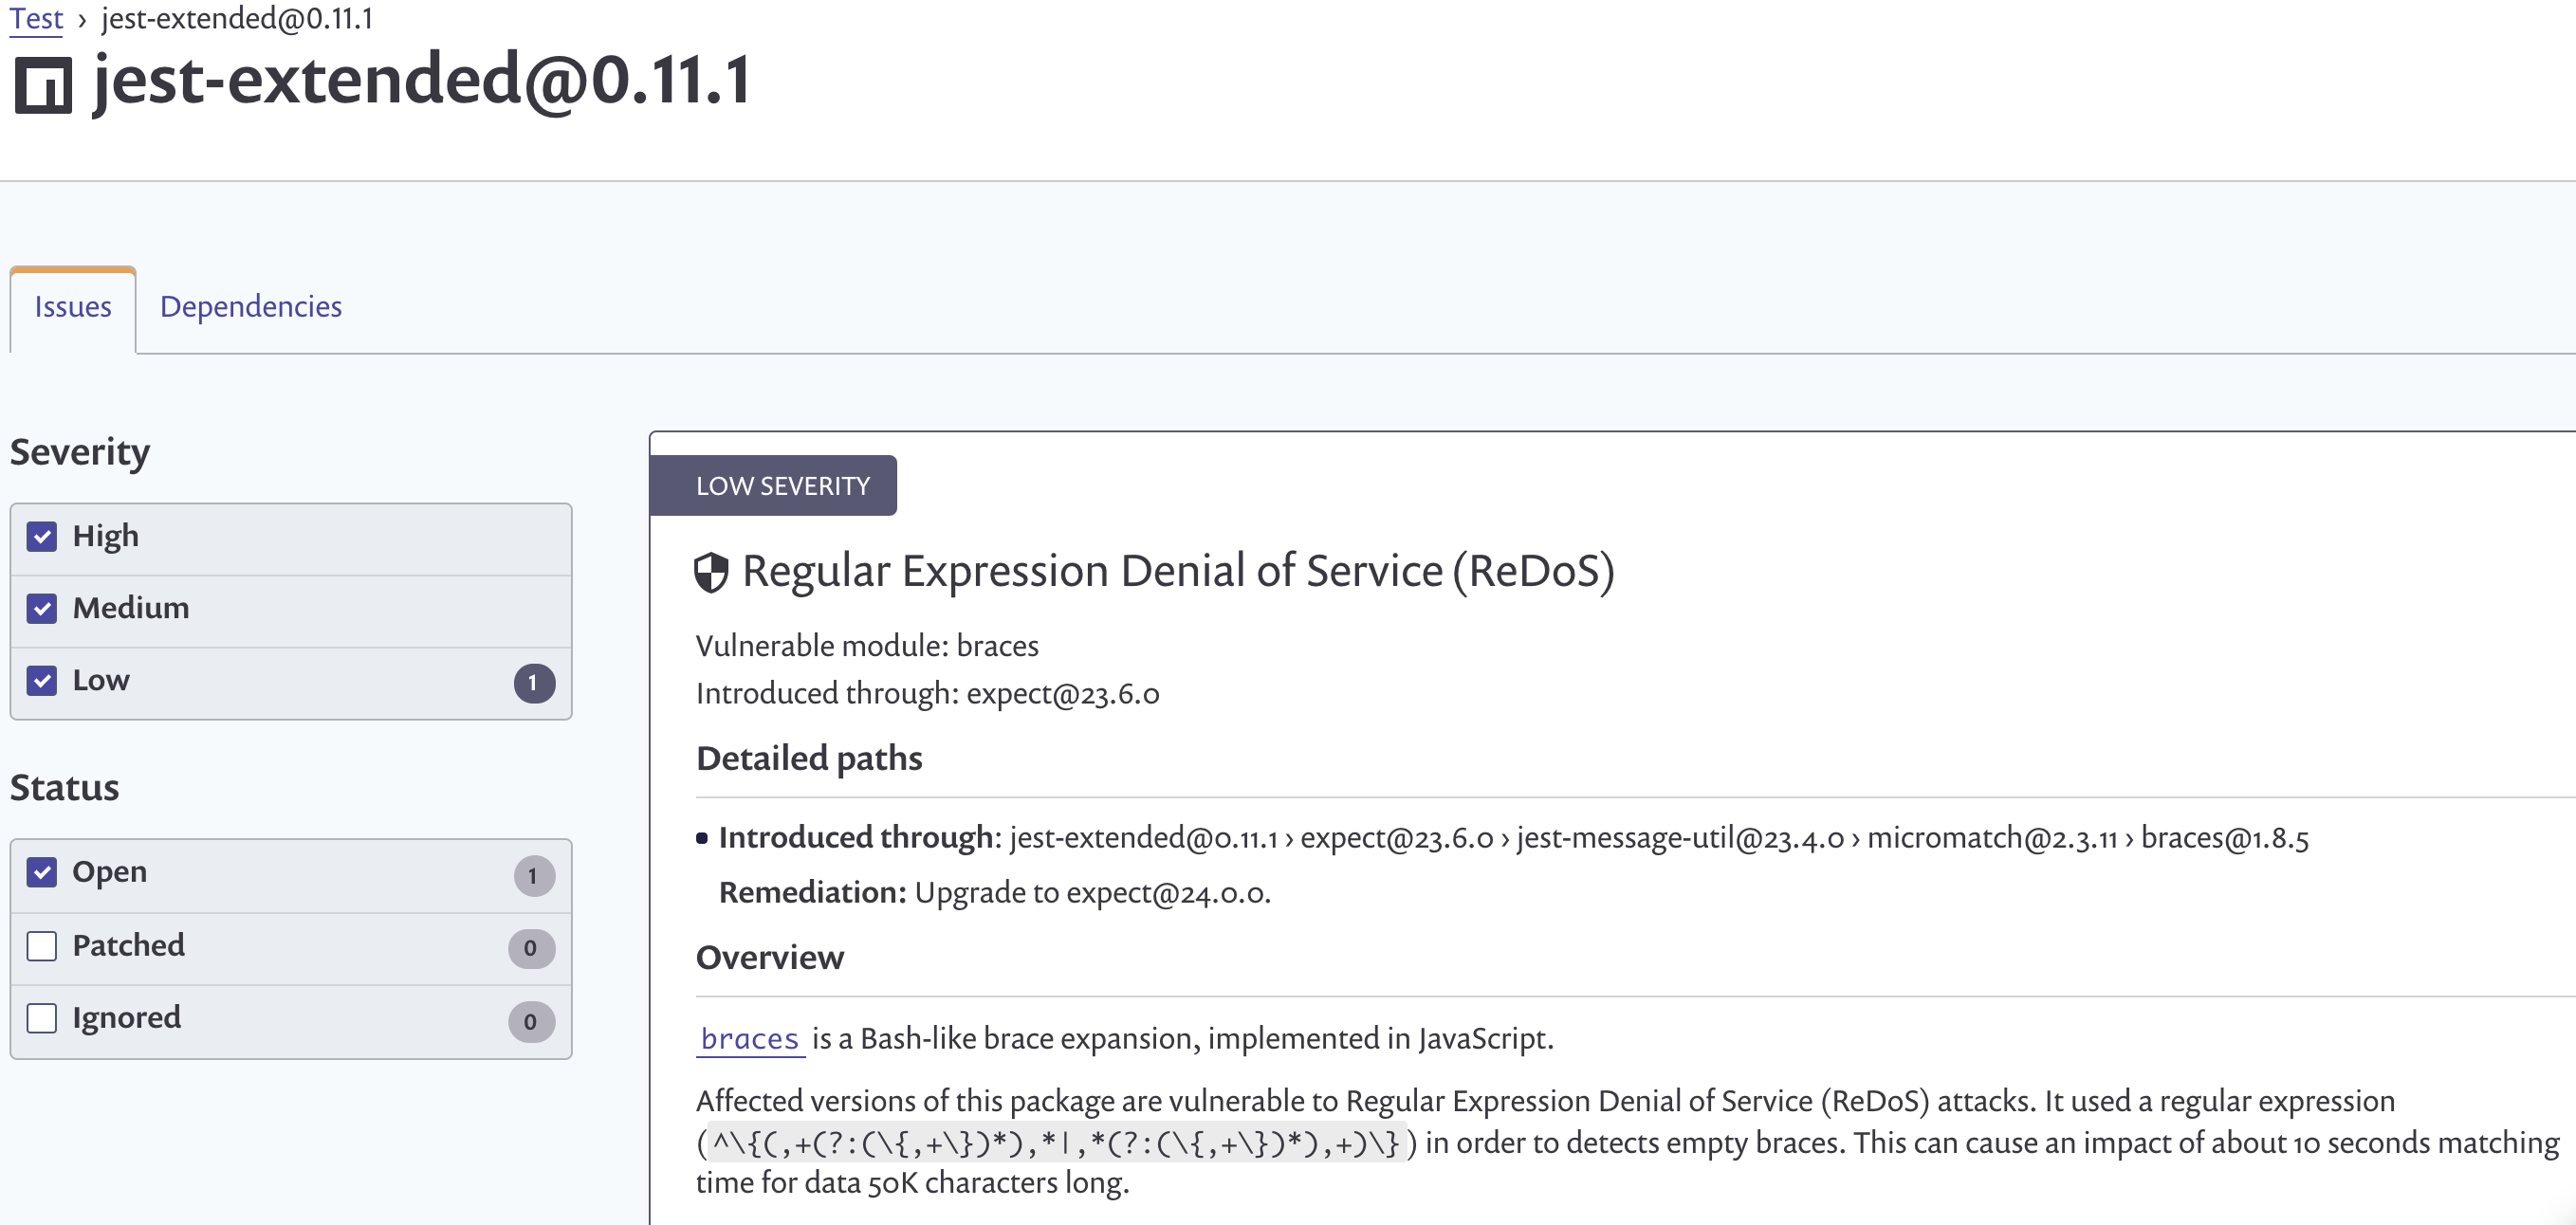 0bb62d6d45c66 So the action item to take would be to upgrade the direct dependency of  expect to expect@24.0.0 as the Snyk report is proposing, which mitigates the  braces ...